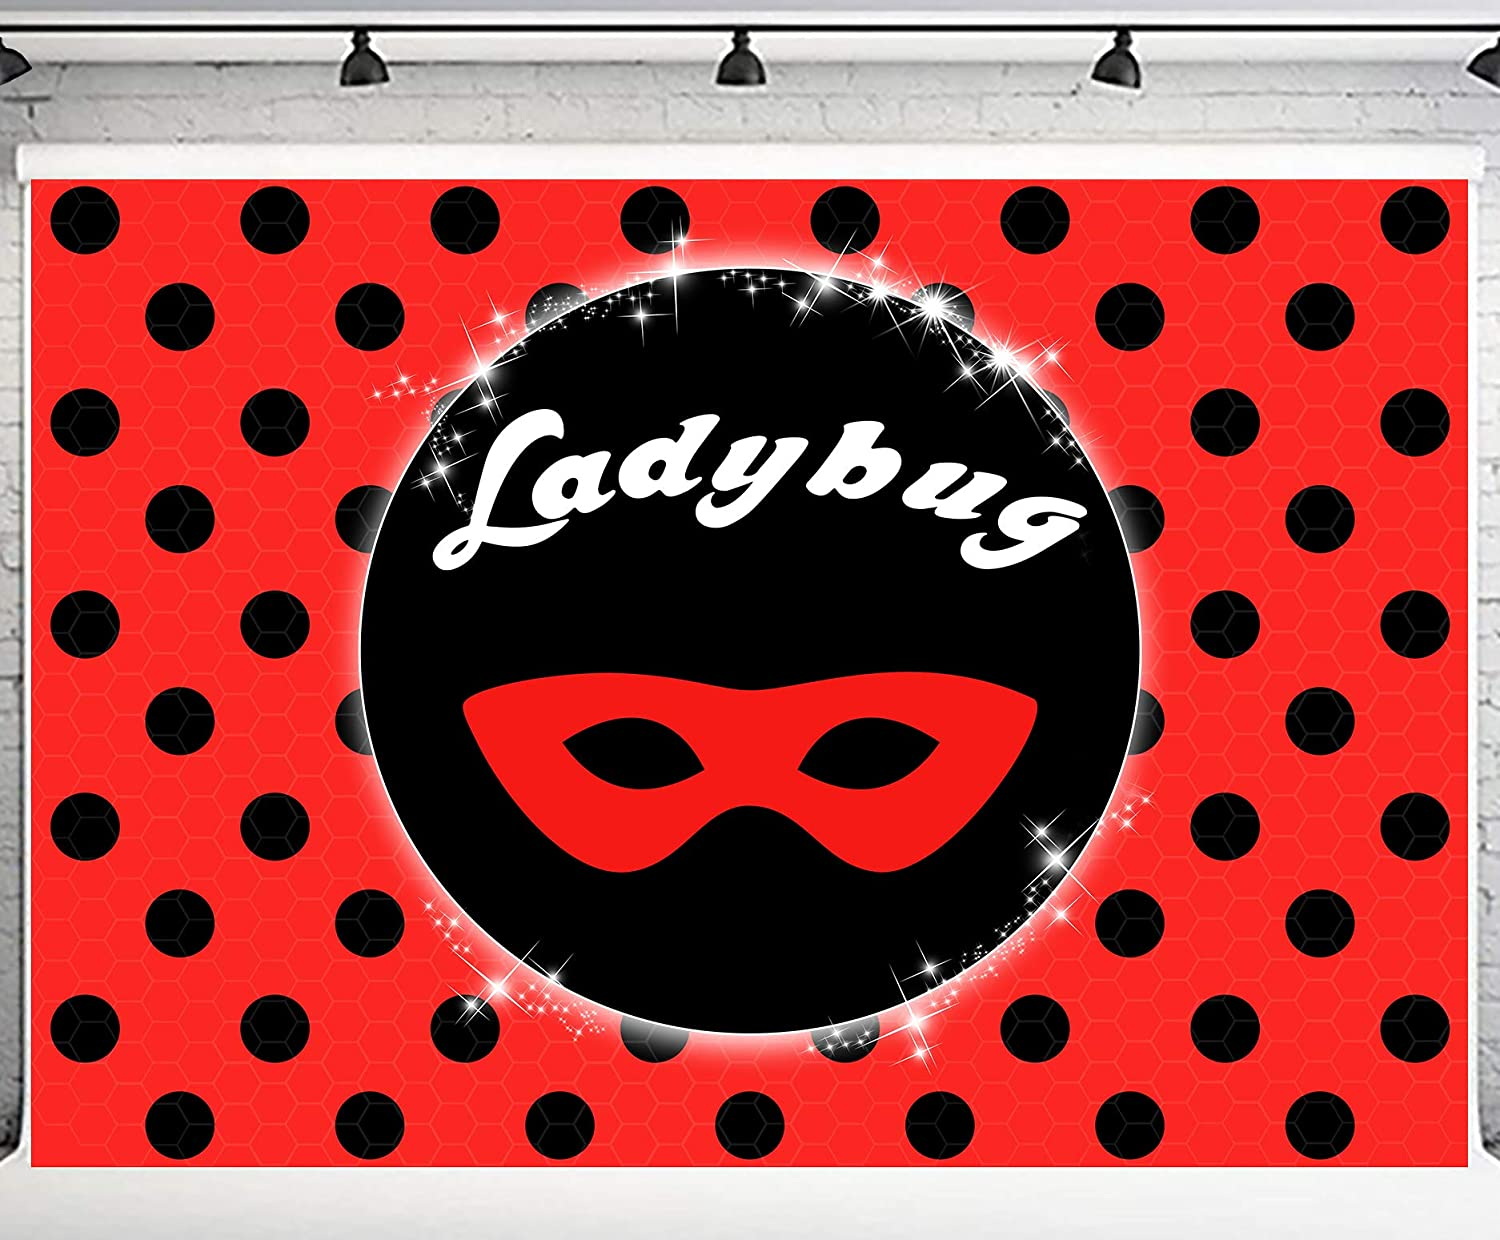 PHMOJEN Red Ladybug Theme Backdrop 10x7ft Miraculous Black Dots Red Mask Photography Background Party Banner DSPH286